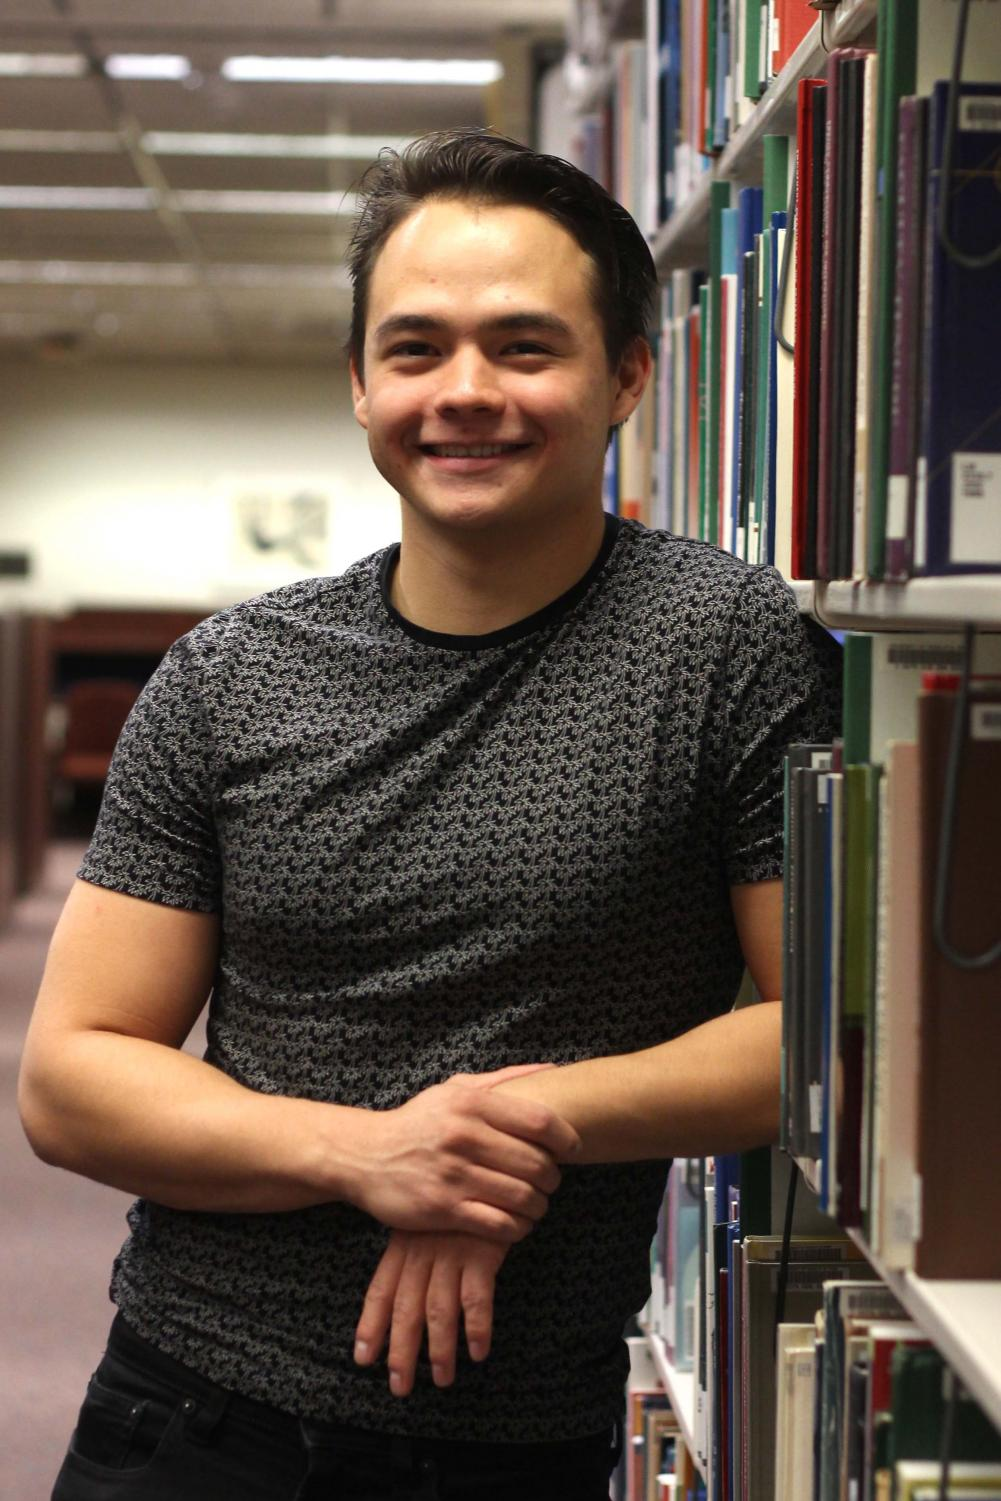 Hao Tien Moy Torres will be graduating this Fall 2019 with a BA on computer science.